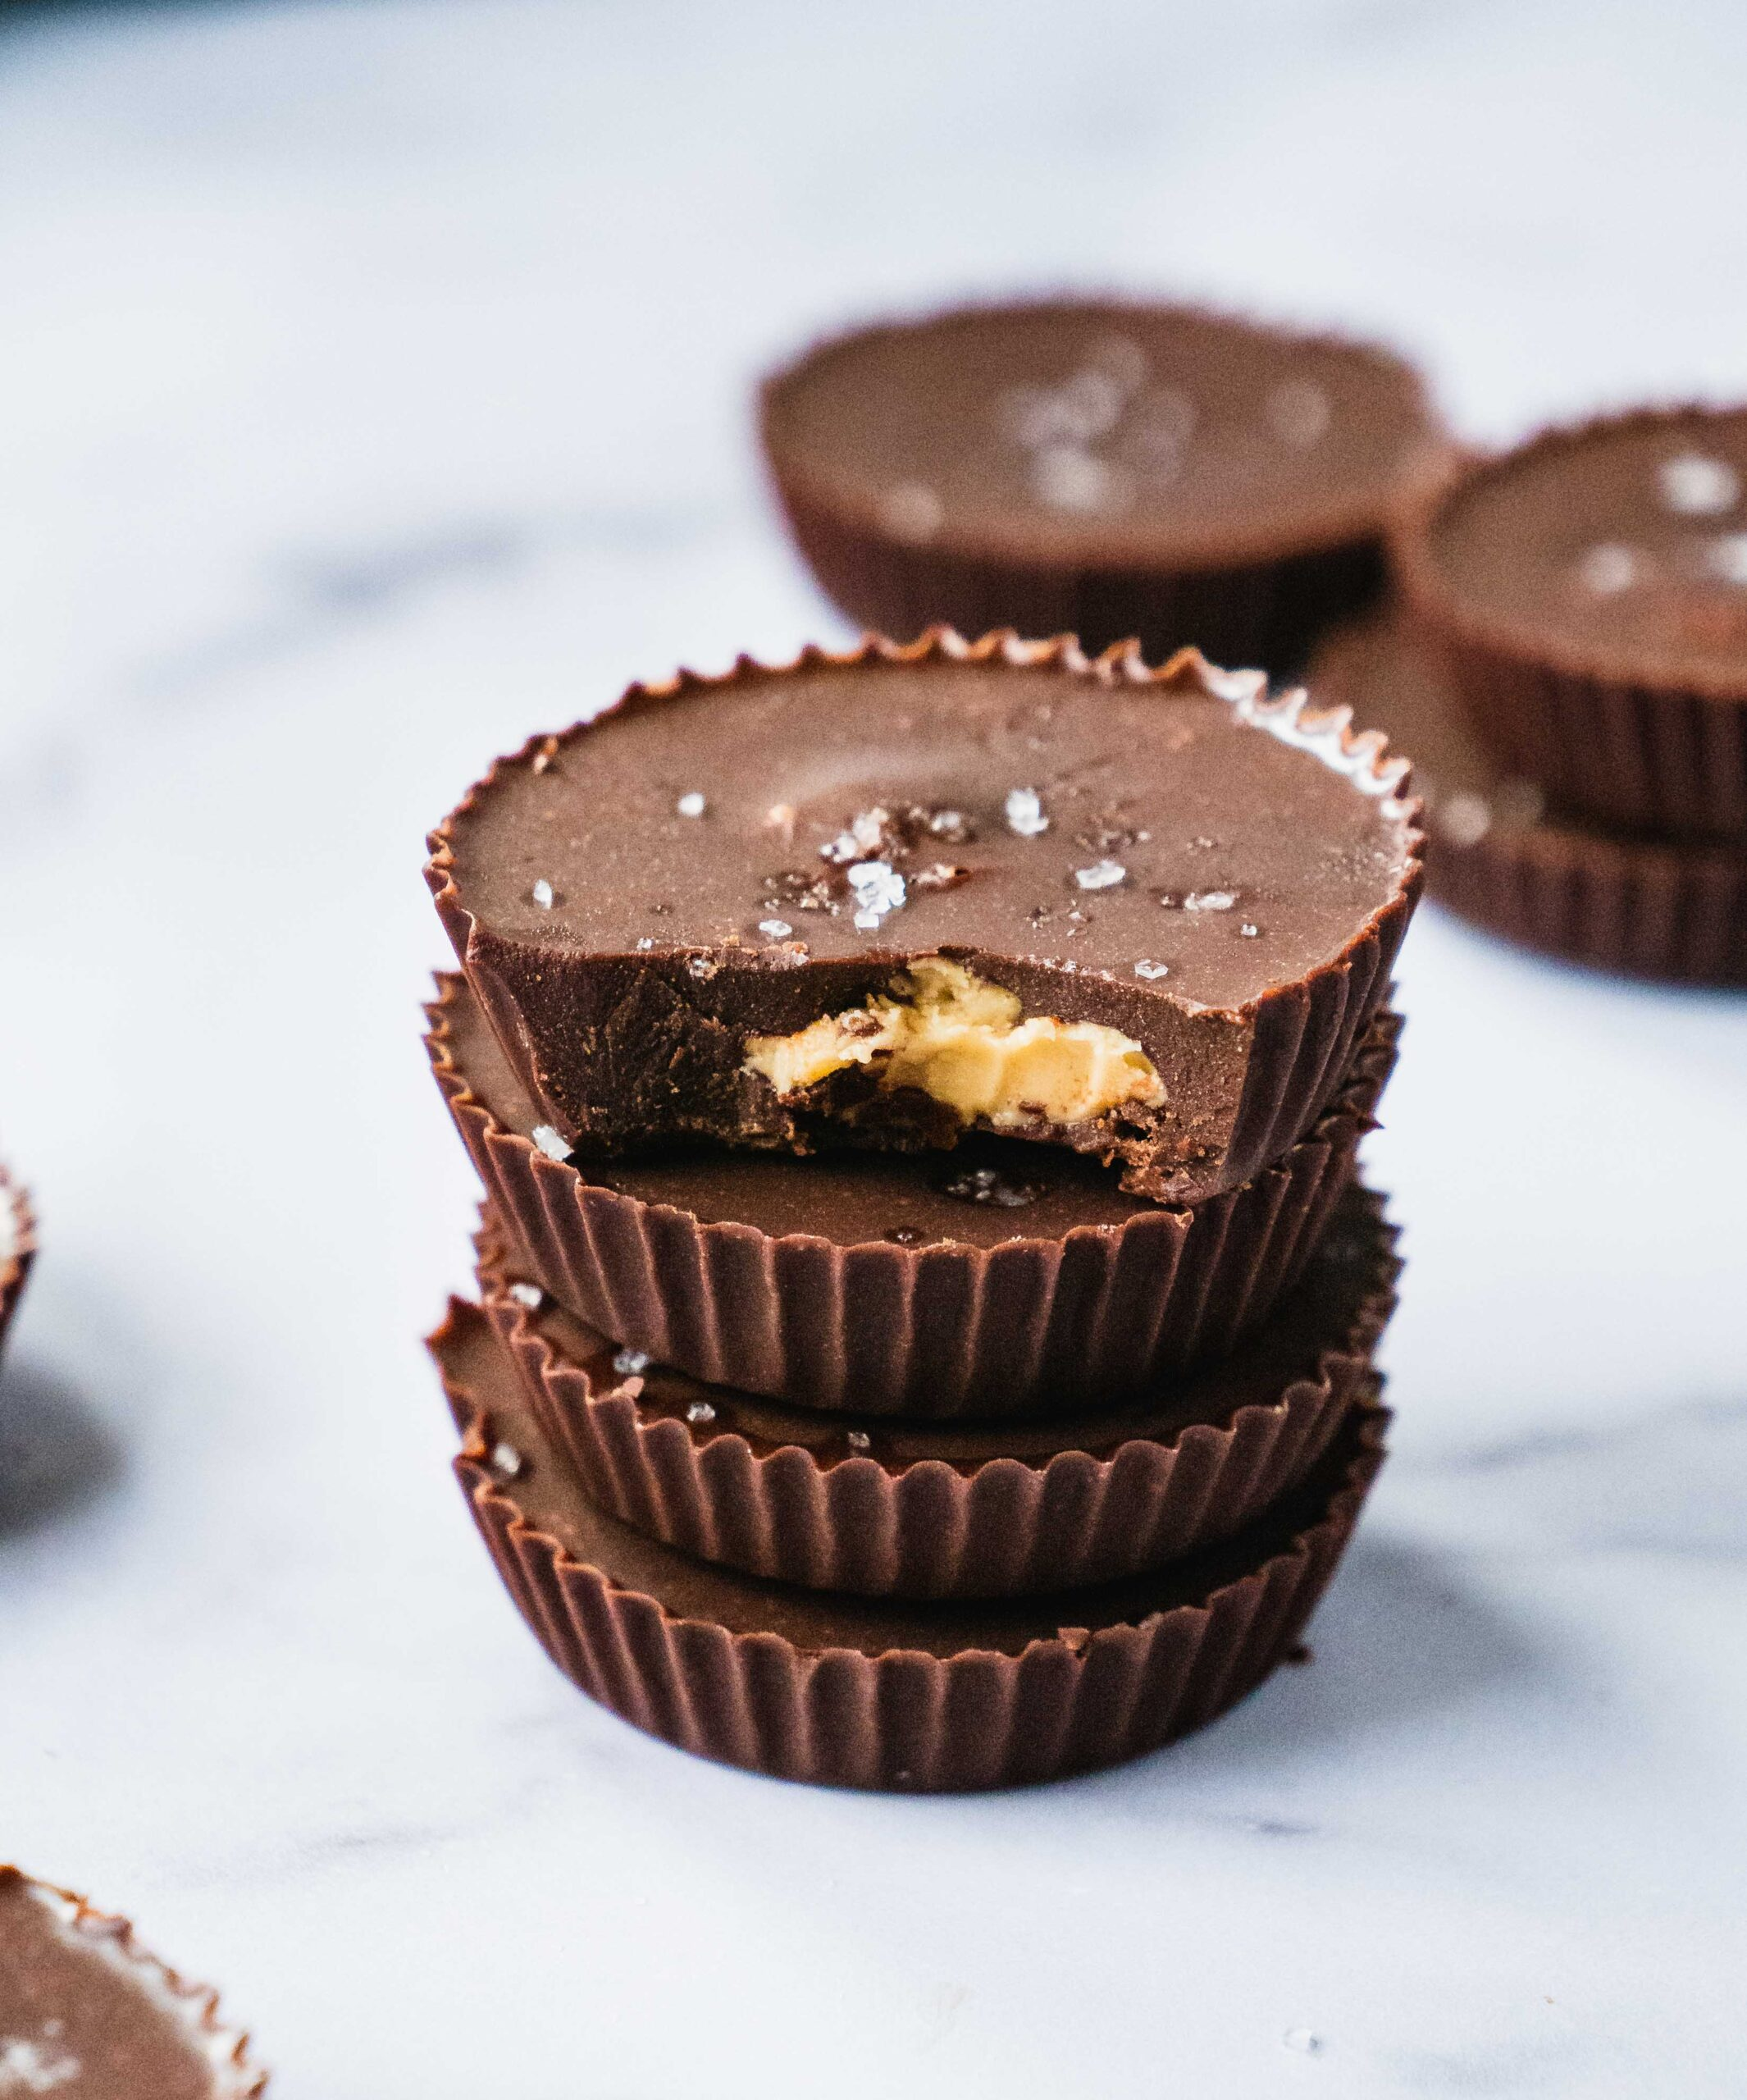 four snack bite sized peanut butter cups stacked on each other. They are sprinkled with sea salt